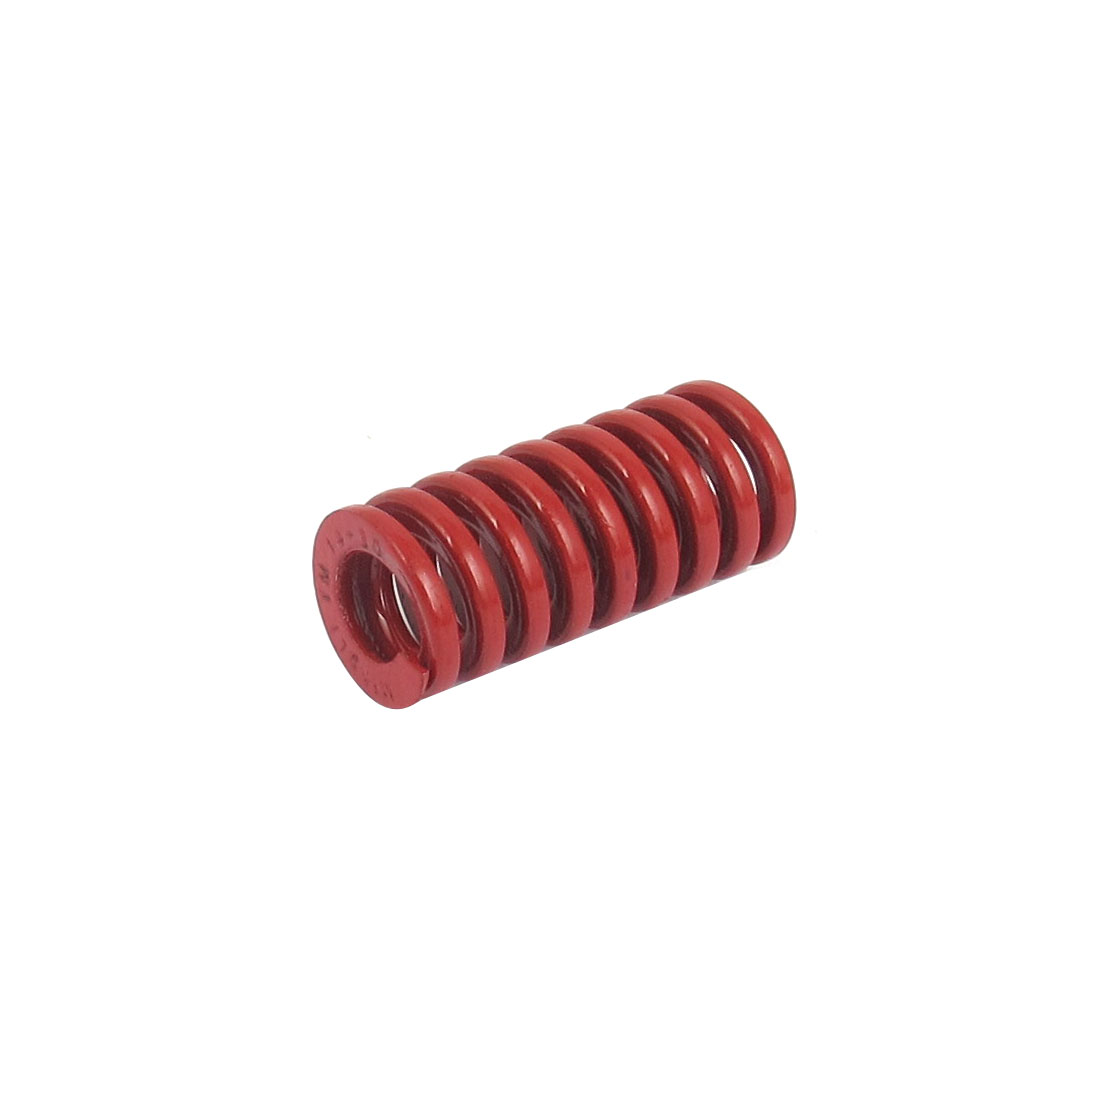 14mm OD 30mm Long Medium Load Spiral Stamping Compression Die Spring Red